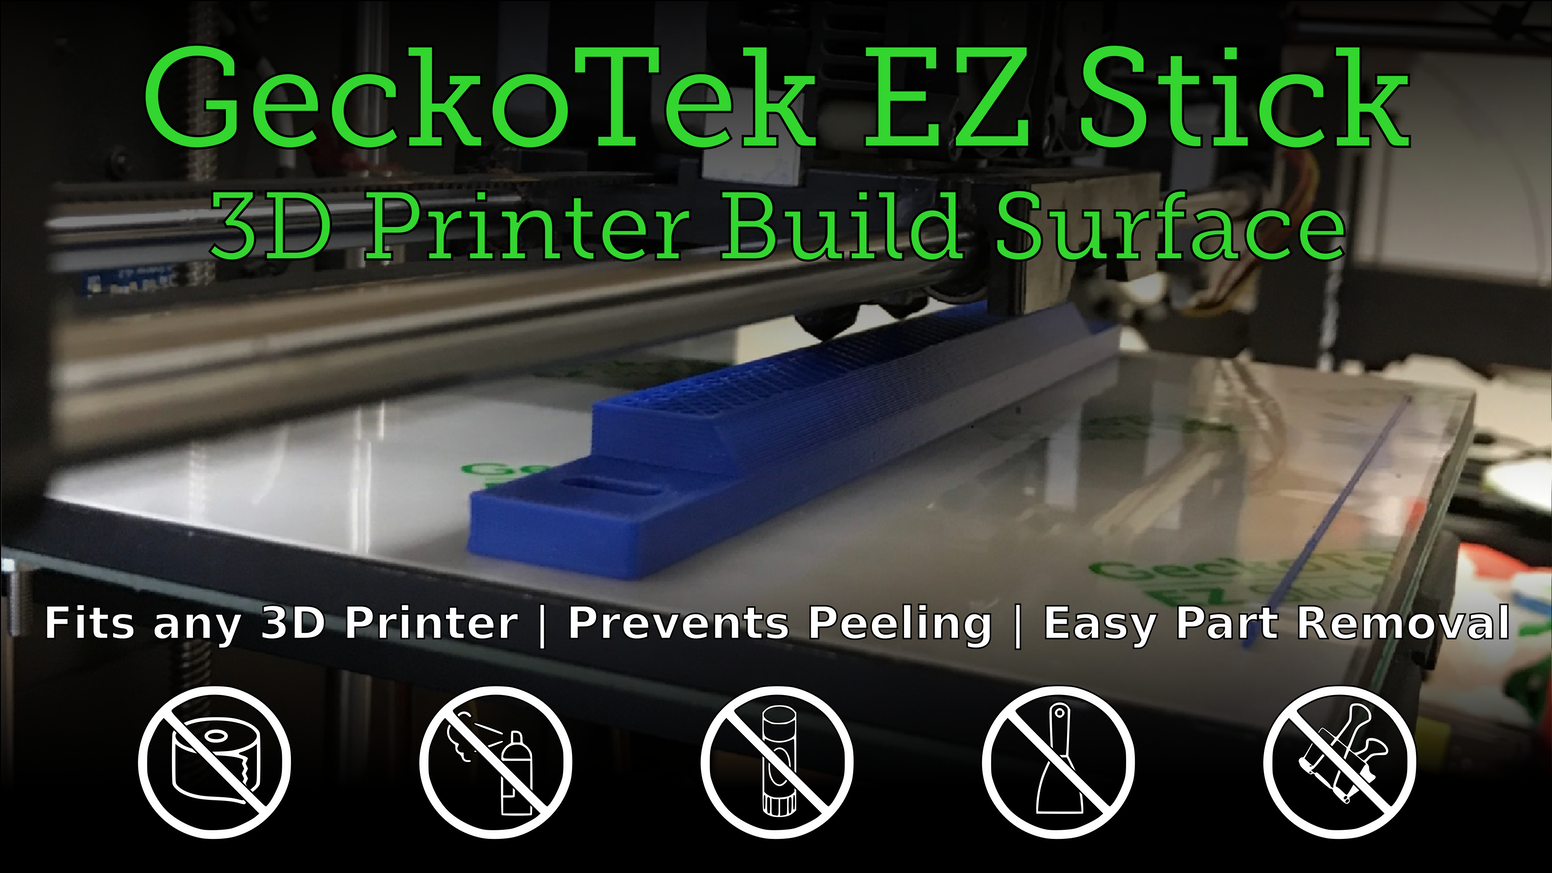 The Most Reliable, Easy-to-Use Build Surface that fits any Desktop 3D Printer